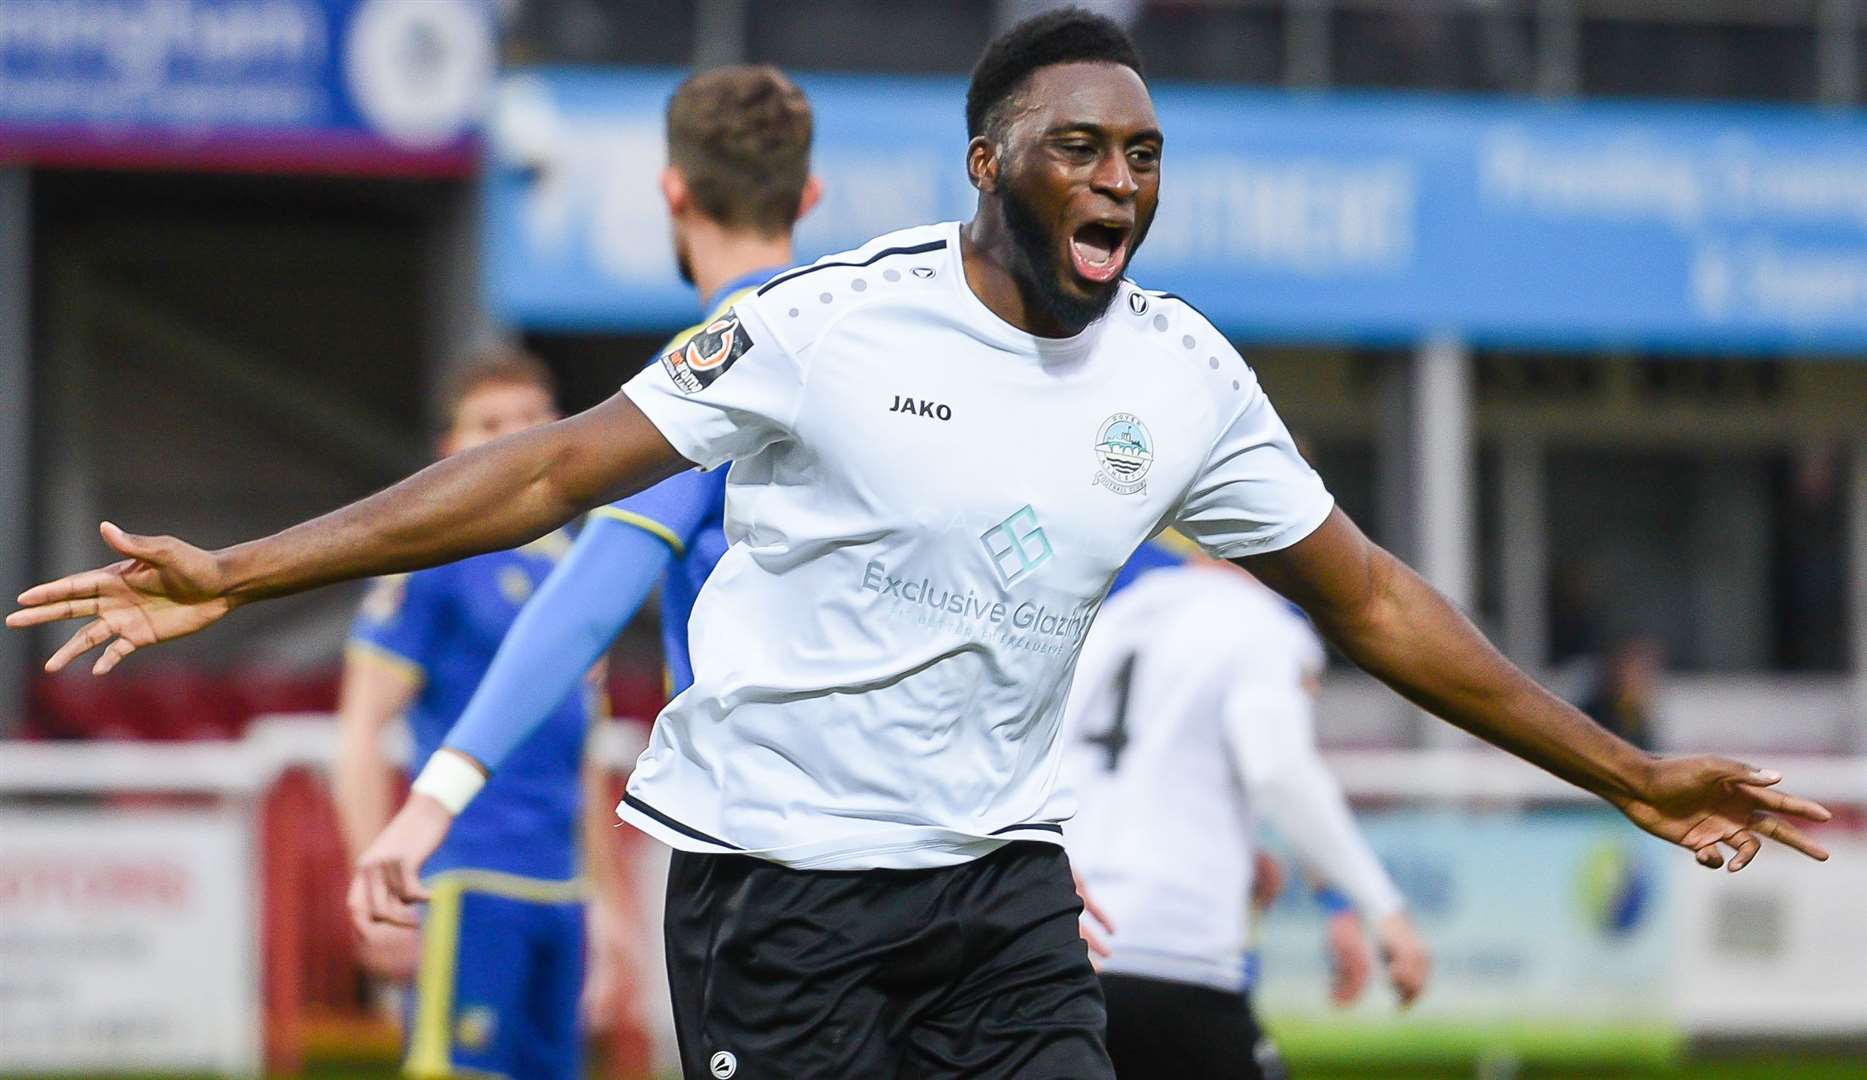 Inih Effiong scored both of Dover's goals in their 2-0 victory at Stockport County on Saturday. Picture: Alan Langley